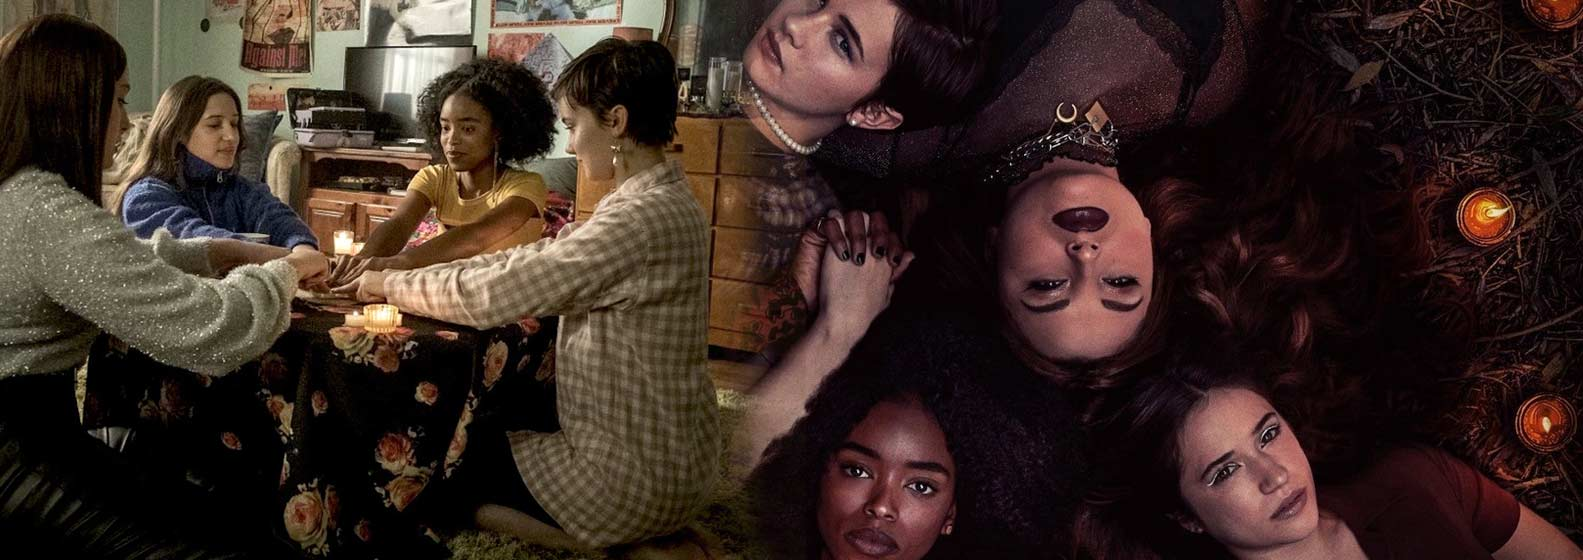 The Craft: Legacy - Header Image